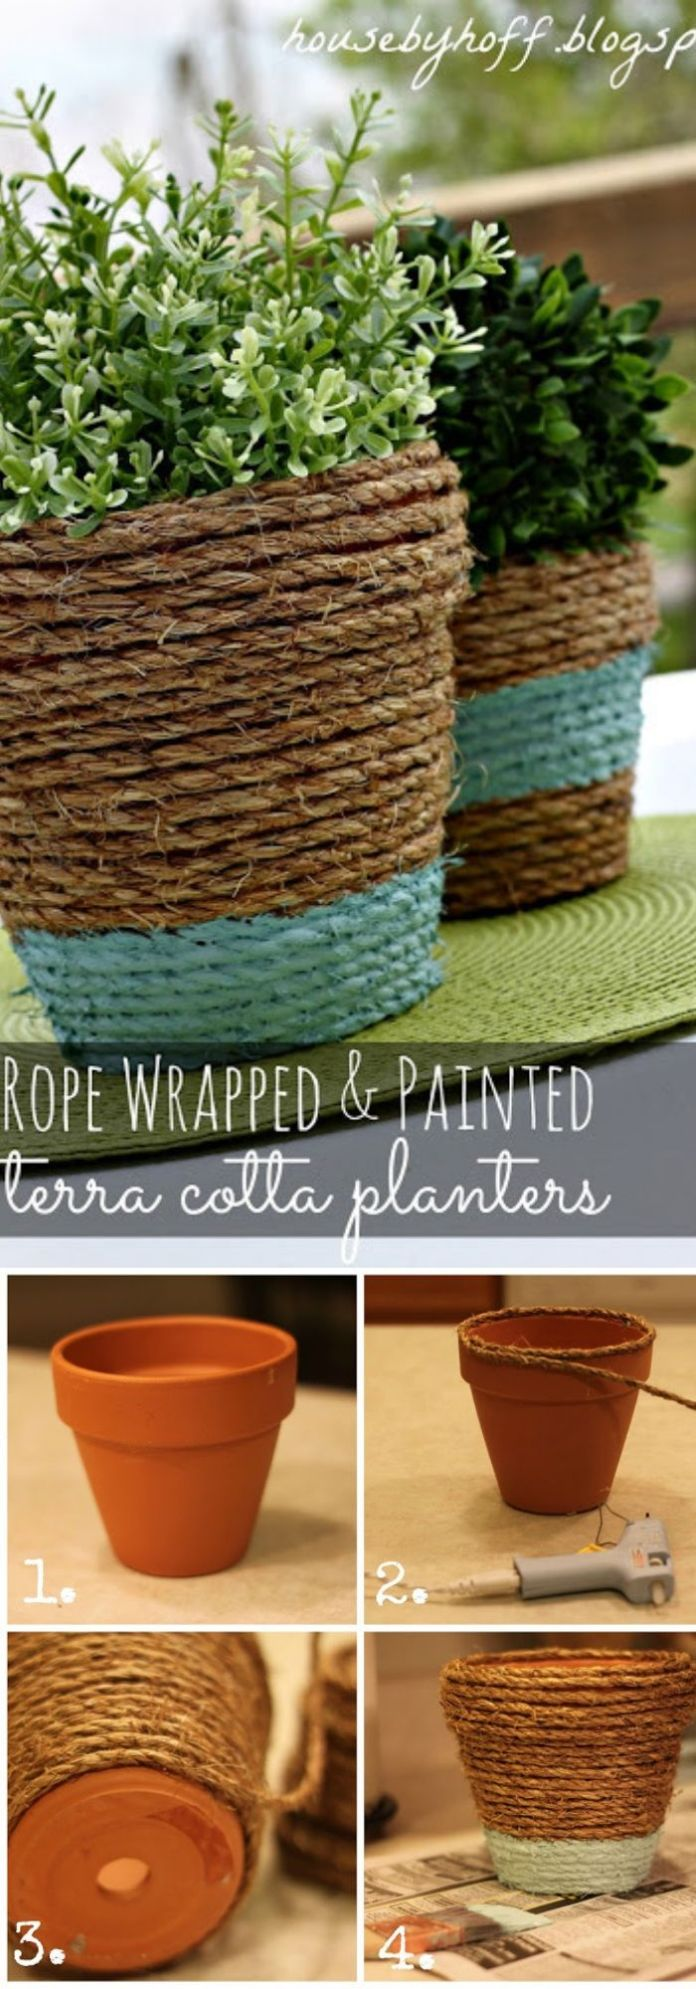 18 Creative Diy Plastic Flower Pot Projects Ideas For 2021